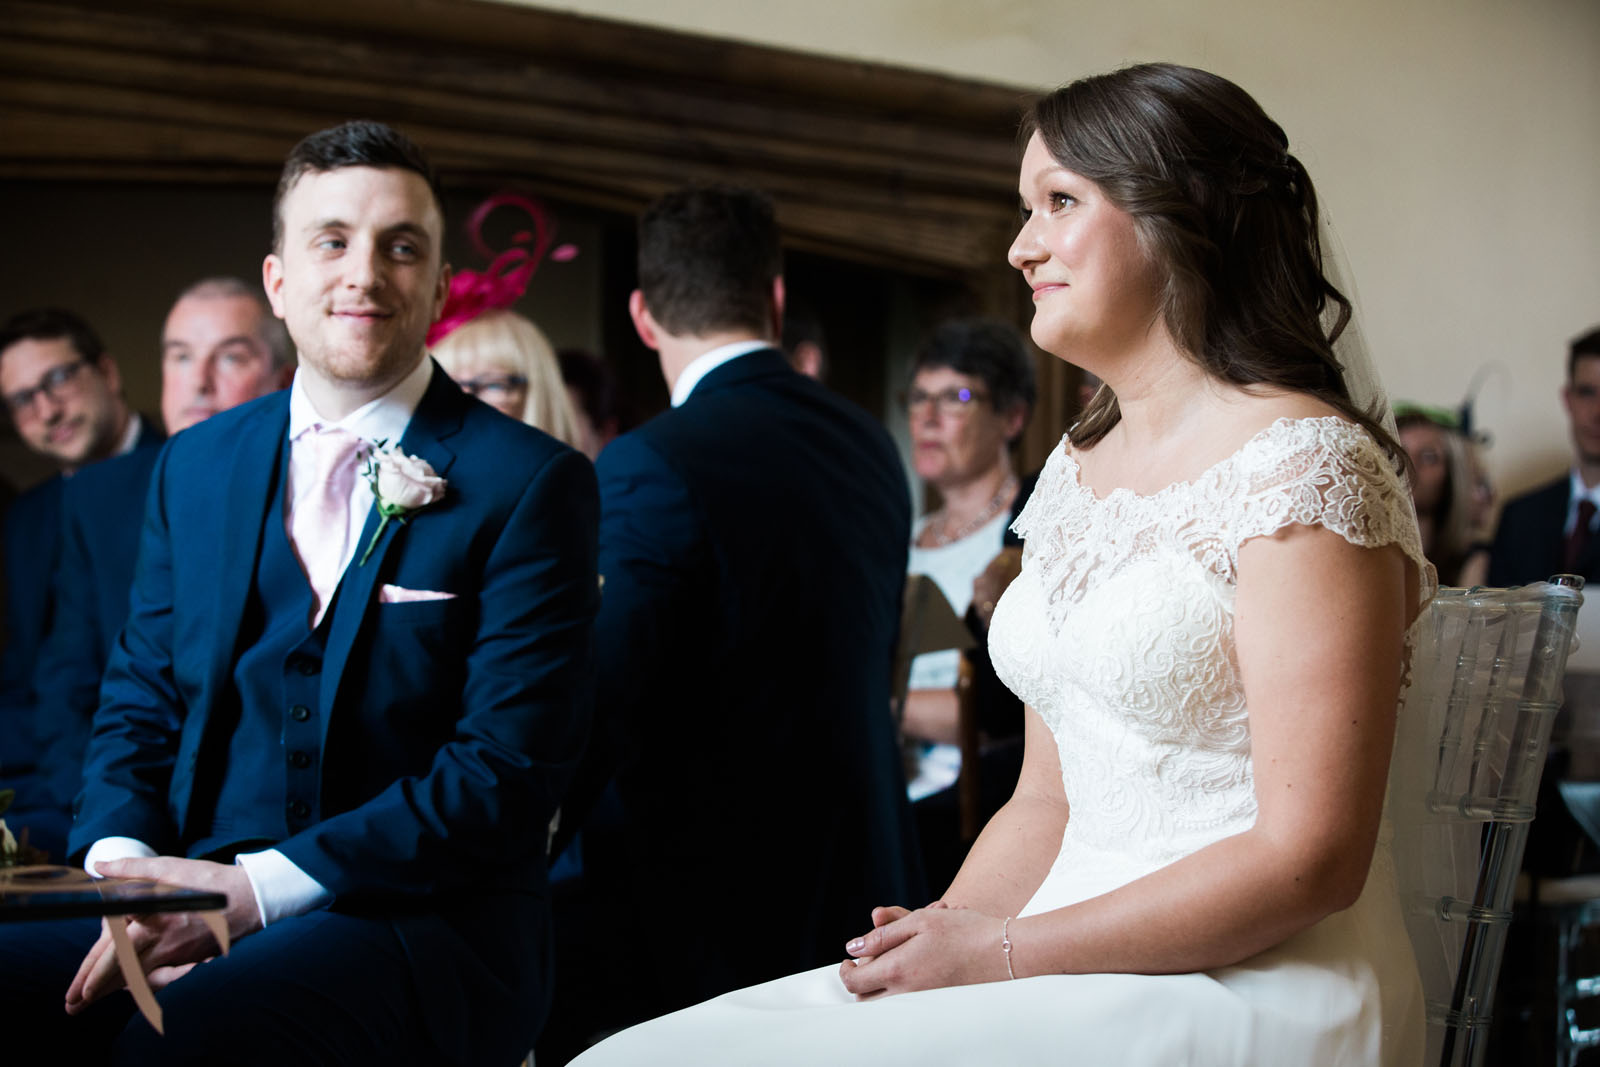 notley abbey ceremony - buckinghamshire wedding